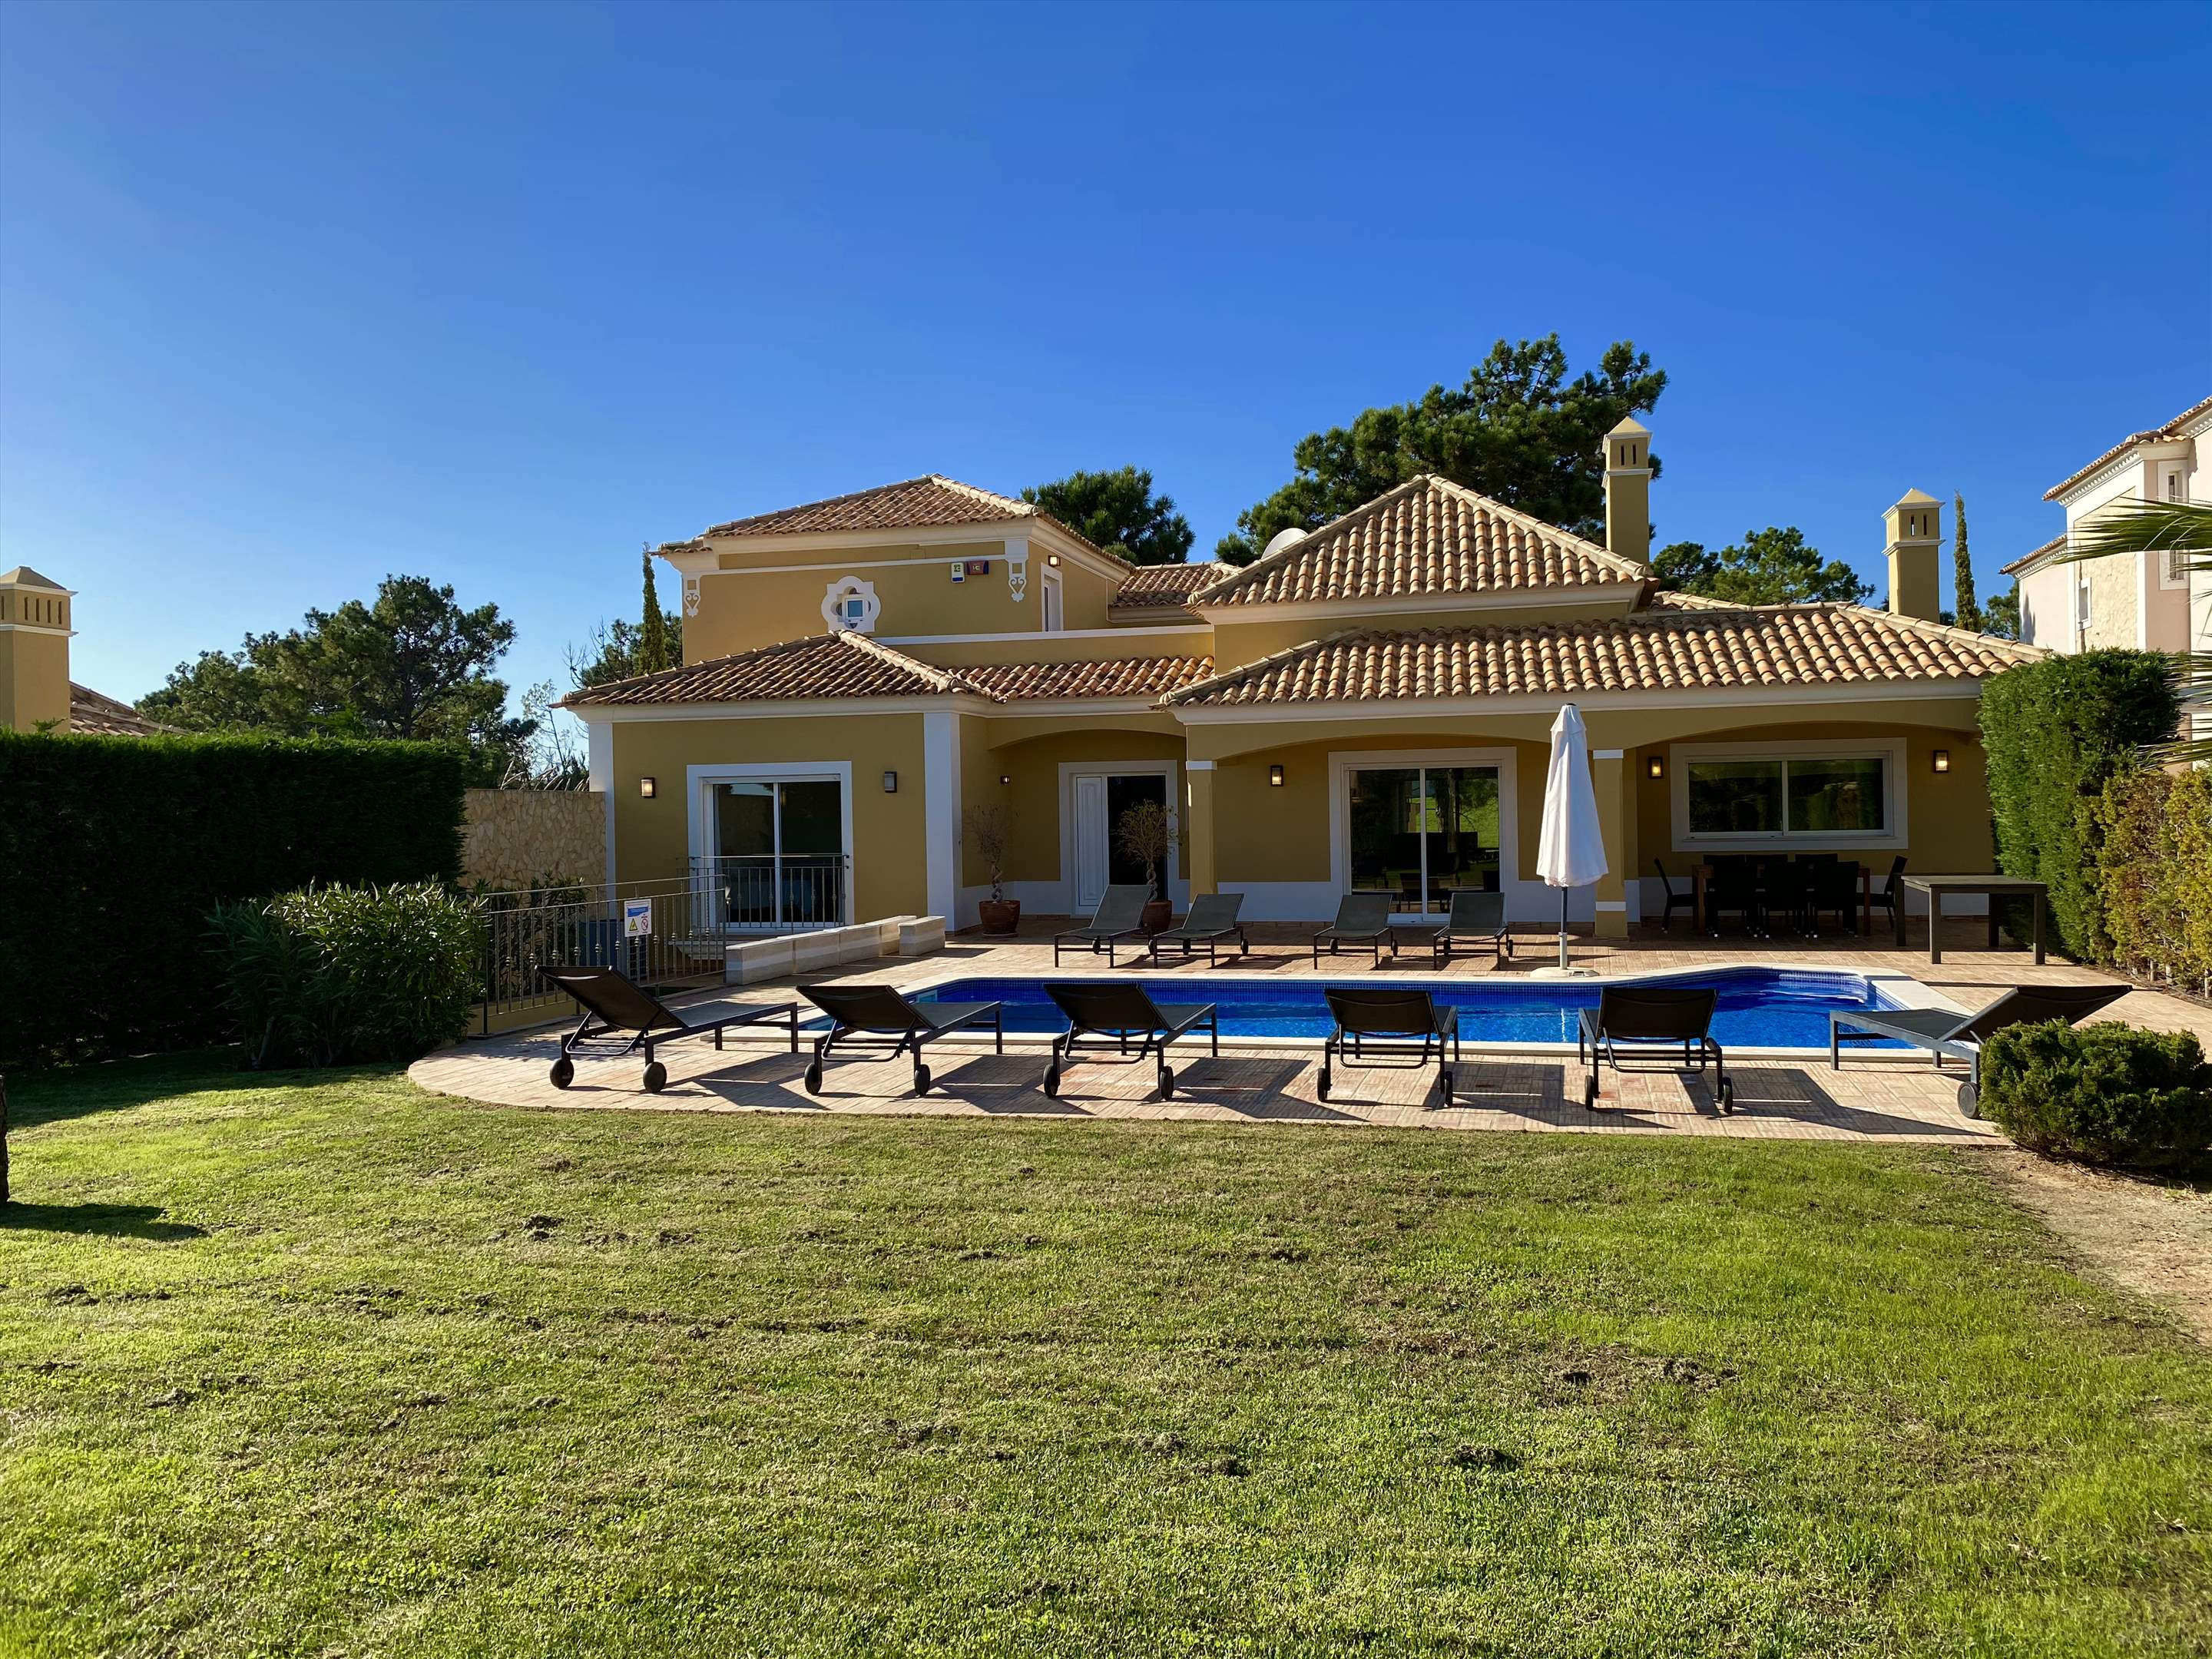 The Ocean Villas, 5 bedroom villa in Gale, Vale da Parra and Guia, Algarve